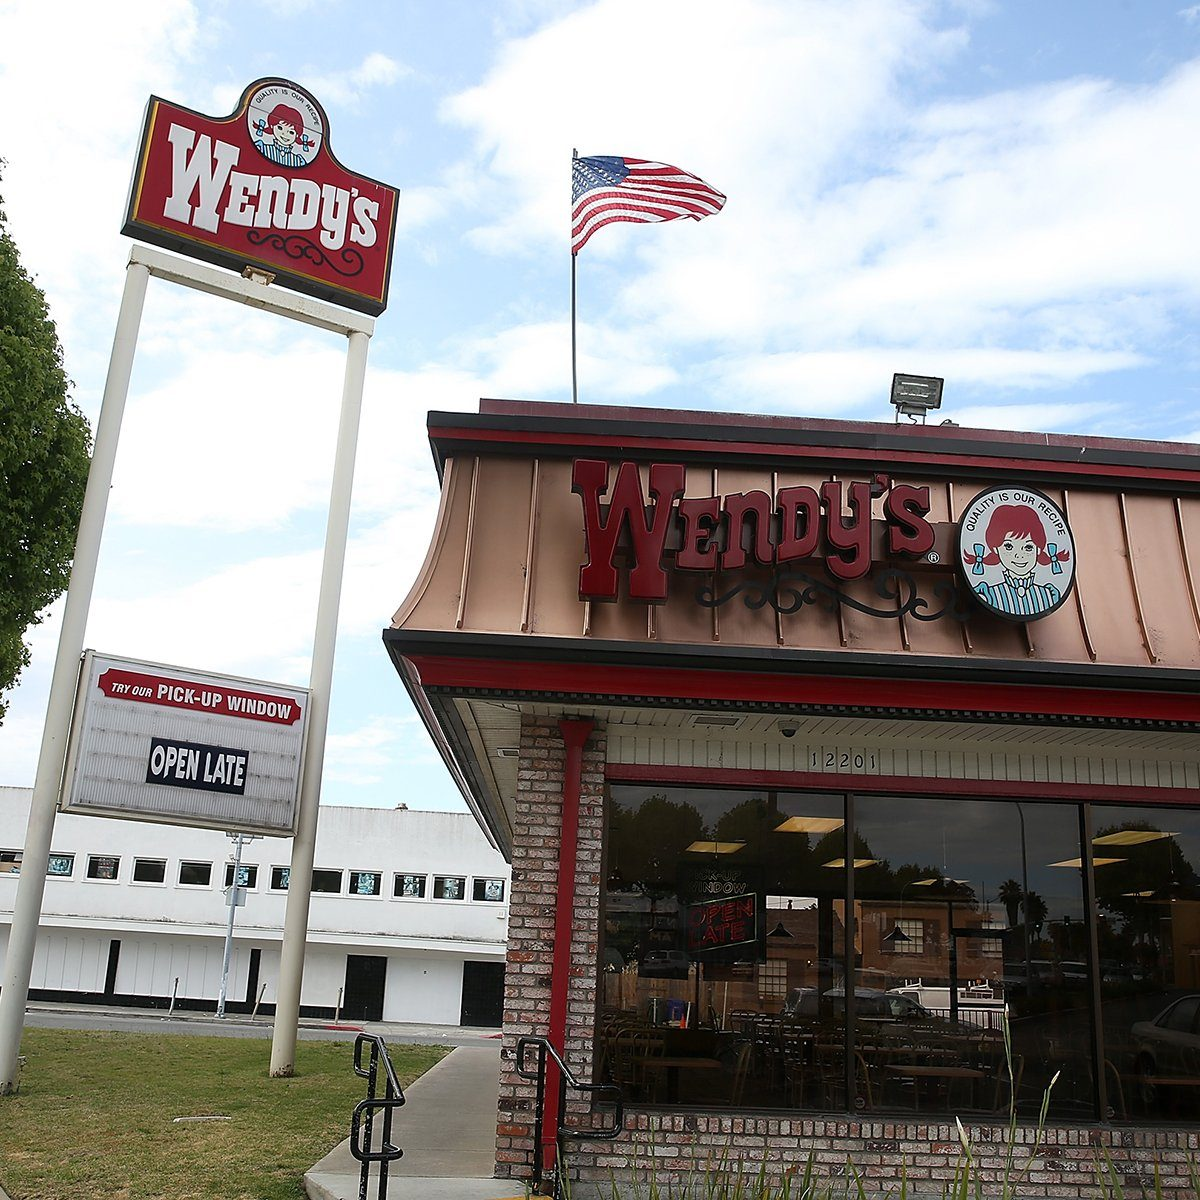 RICHMOND, CA - MAY 07: An exterior view of a Wendy's restaurant on May 7, 2015 in Richmond, California. Wendy's announced plans to sell 640 of its company owned restaurants in the U.S. and Canada. Wendy's has 6,515 restaurants worldwide. (Photo by Justin Sullivan/Getty Images)